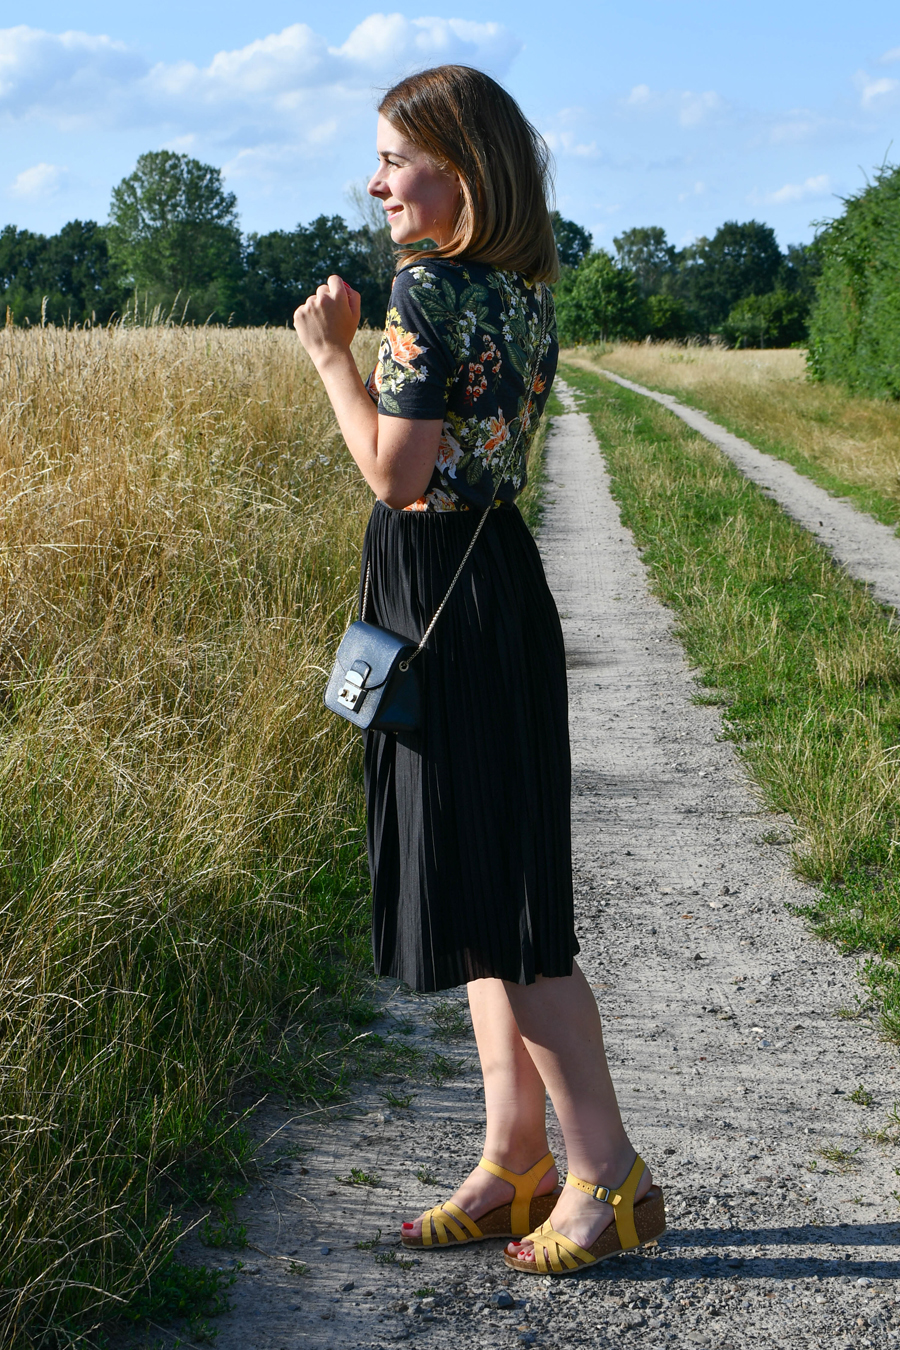 How to wear: Sommerlooks mit Keilabsatz - Sandalette